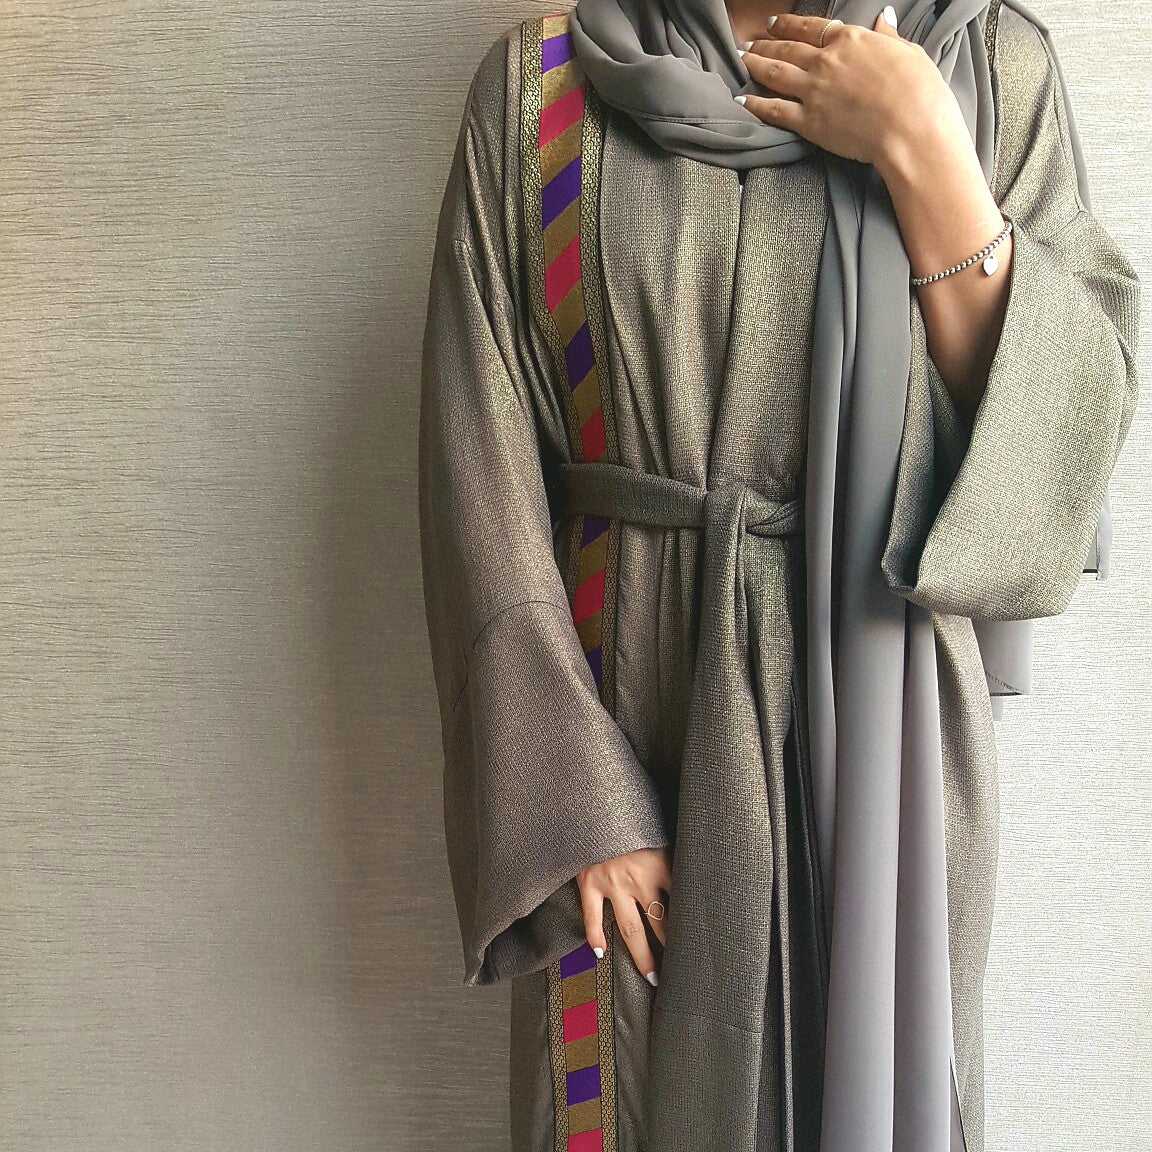 Linen Abaya in Grey Green with Elegant Detailing